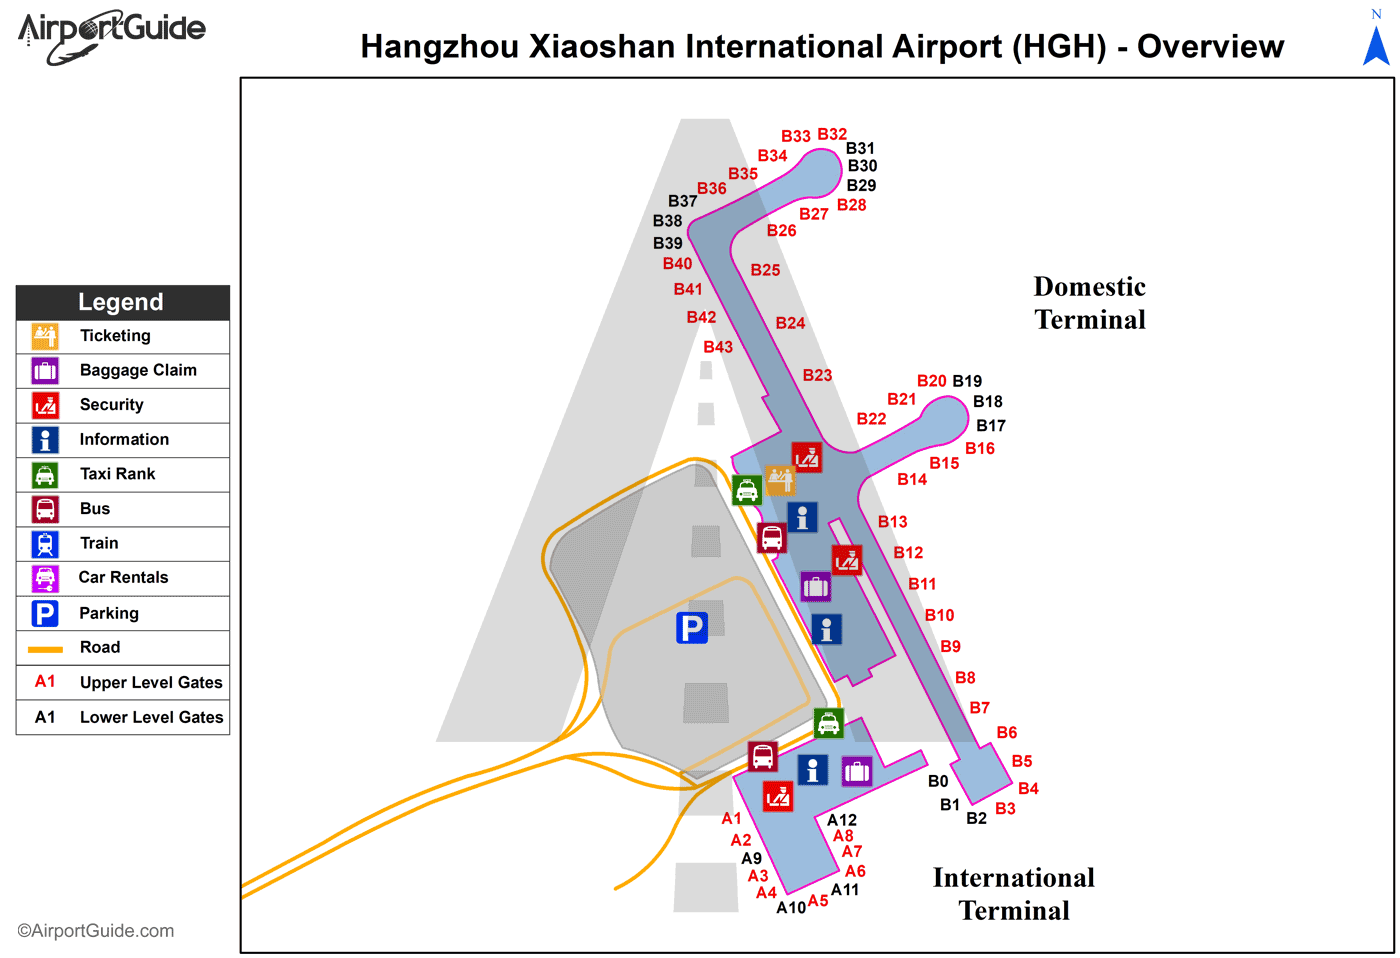 Hangzhou - Hangzhou Xiaoshan International (HGH) Airport Terminal Map - Overview